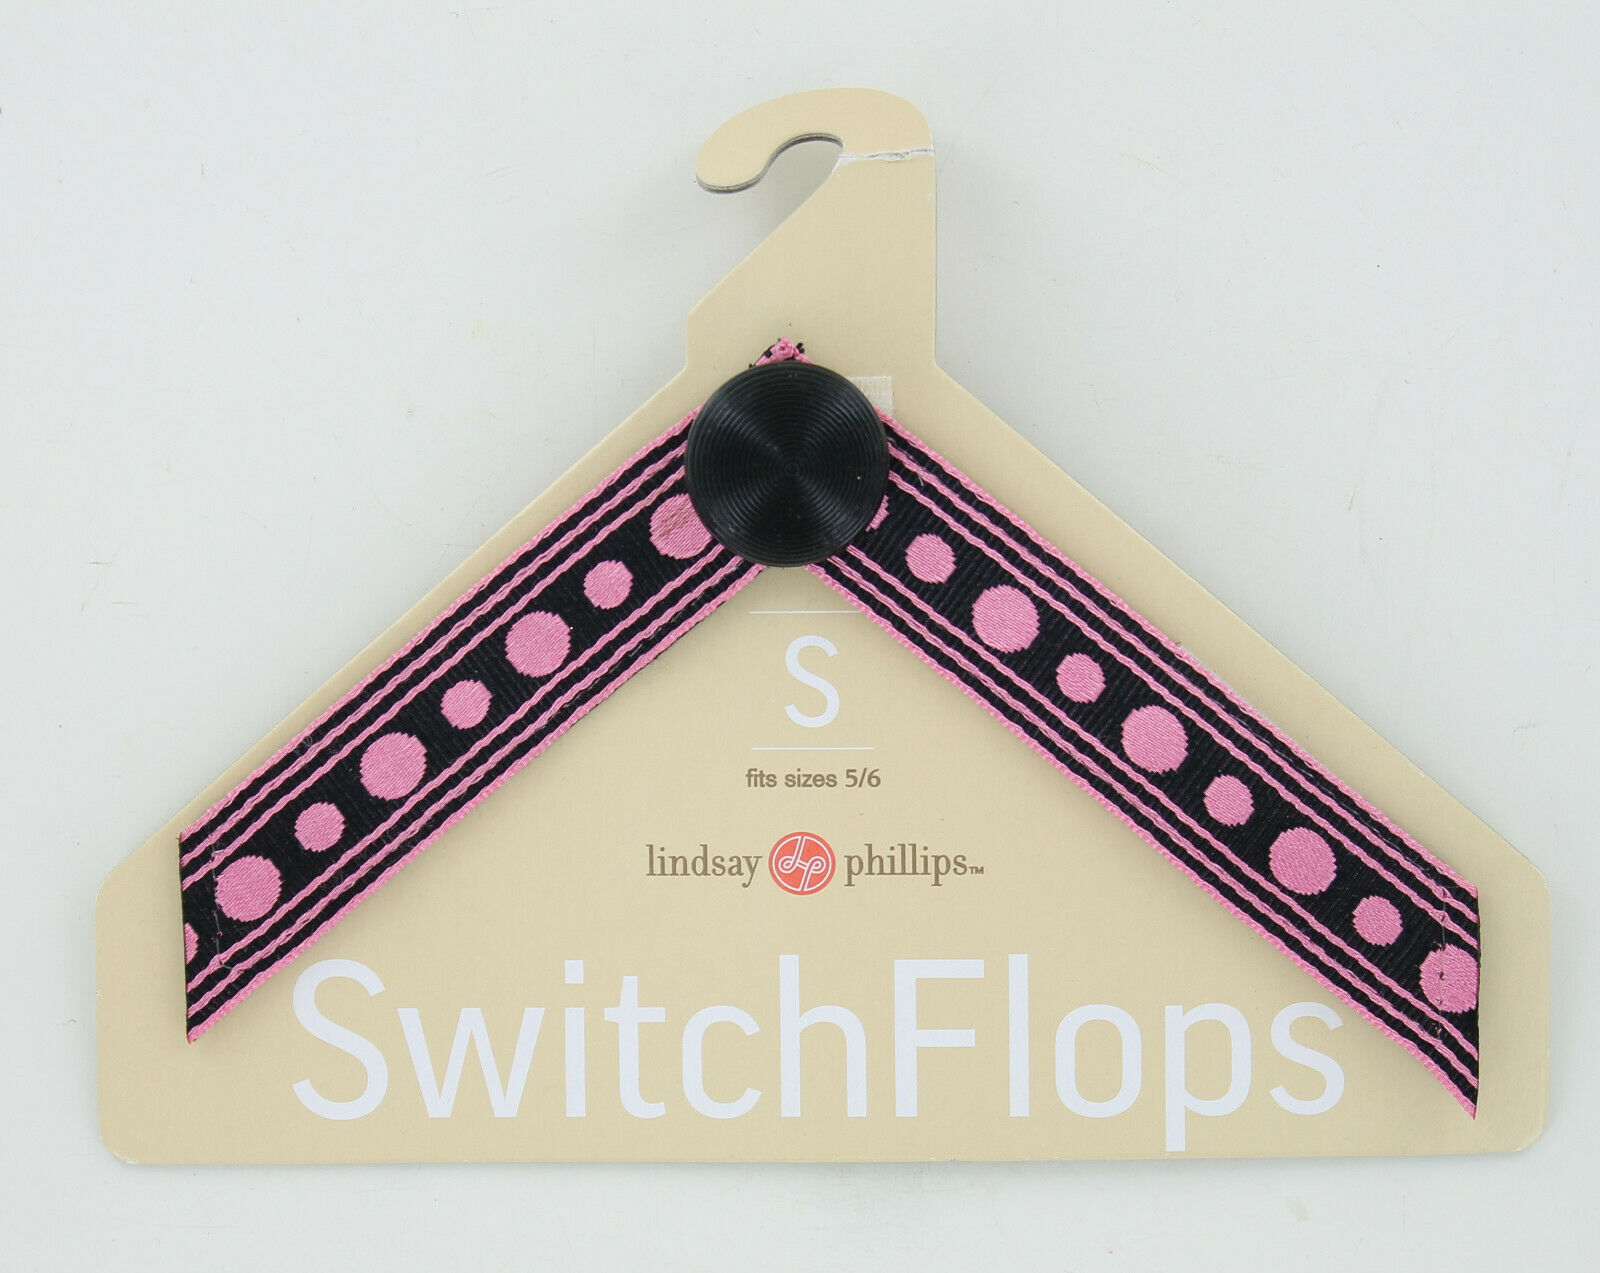 Lindsay Phillips SwitchFlops Straps - Kim - Pink Dots - Small 5/6